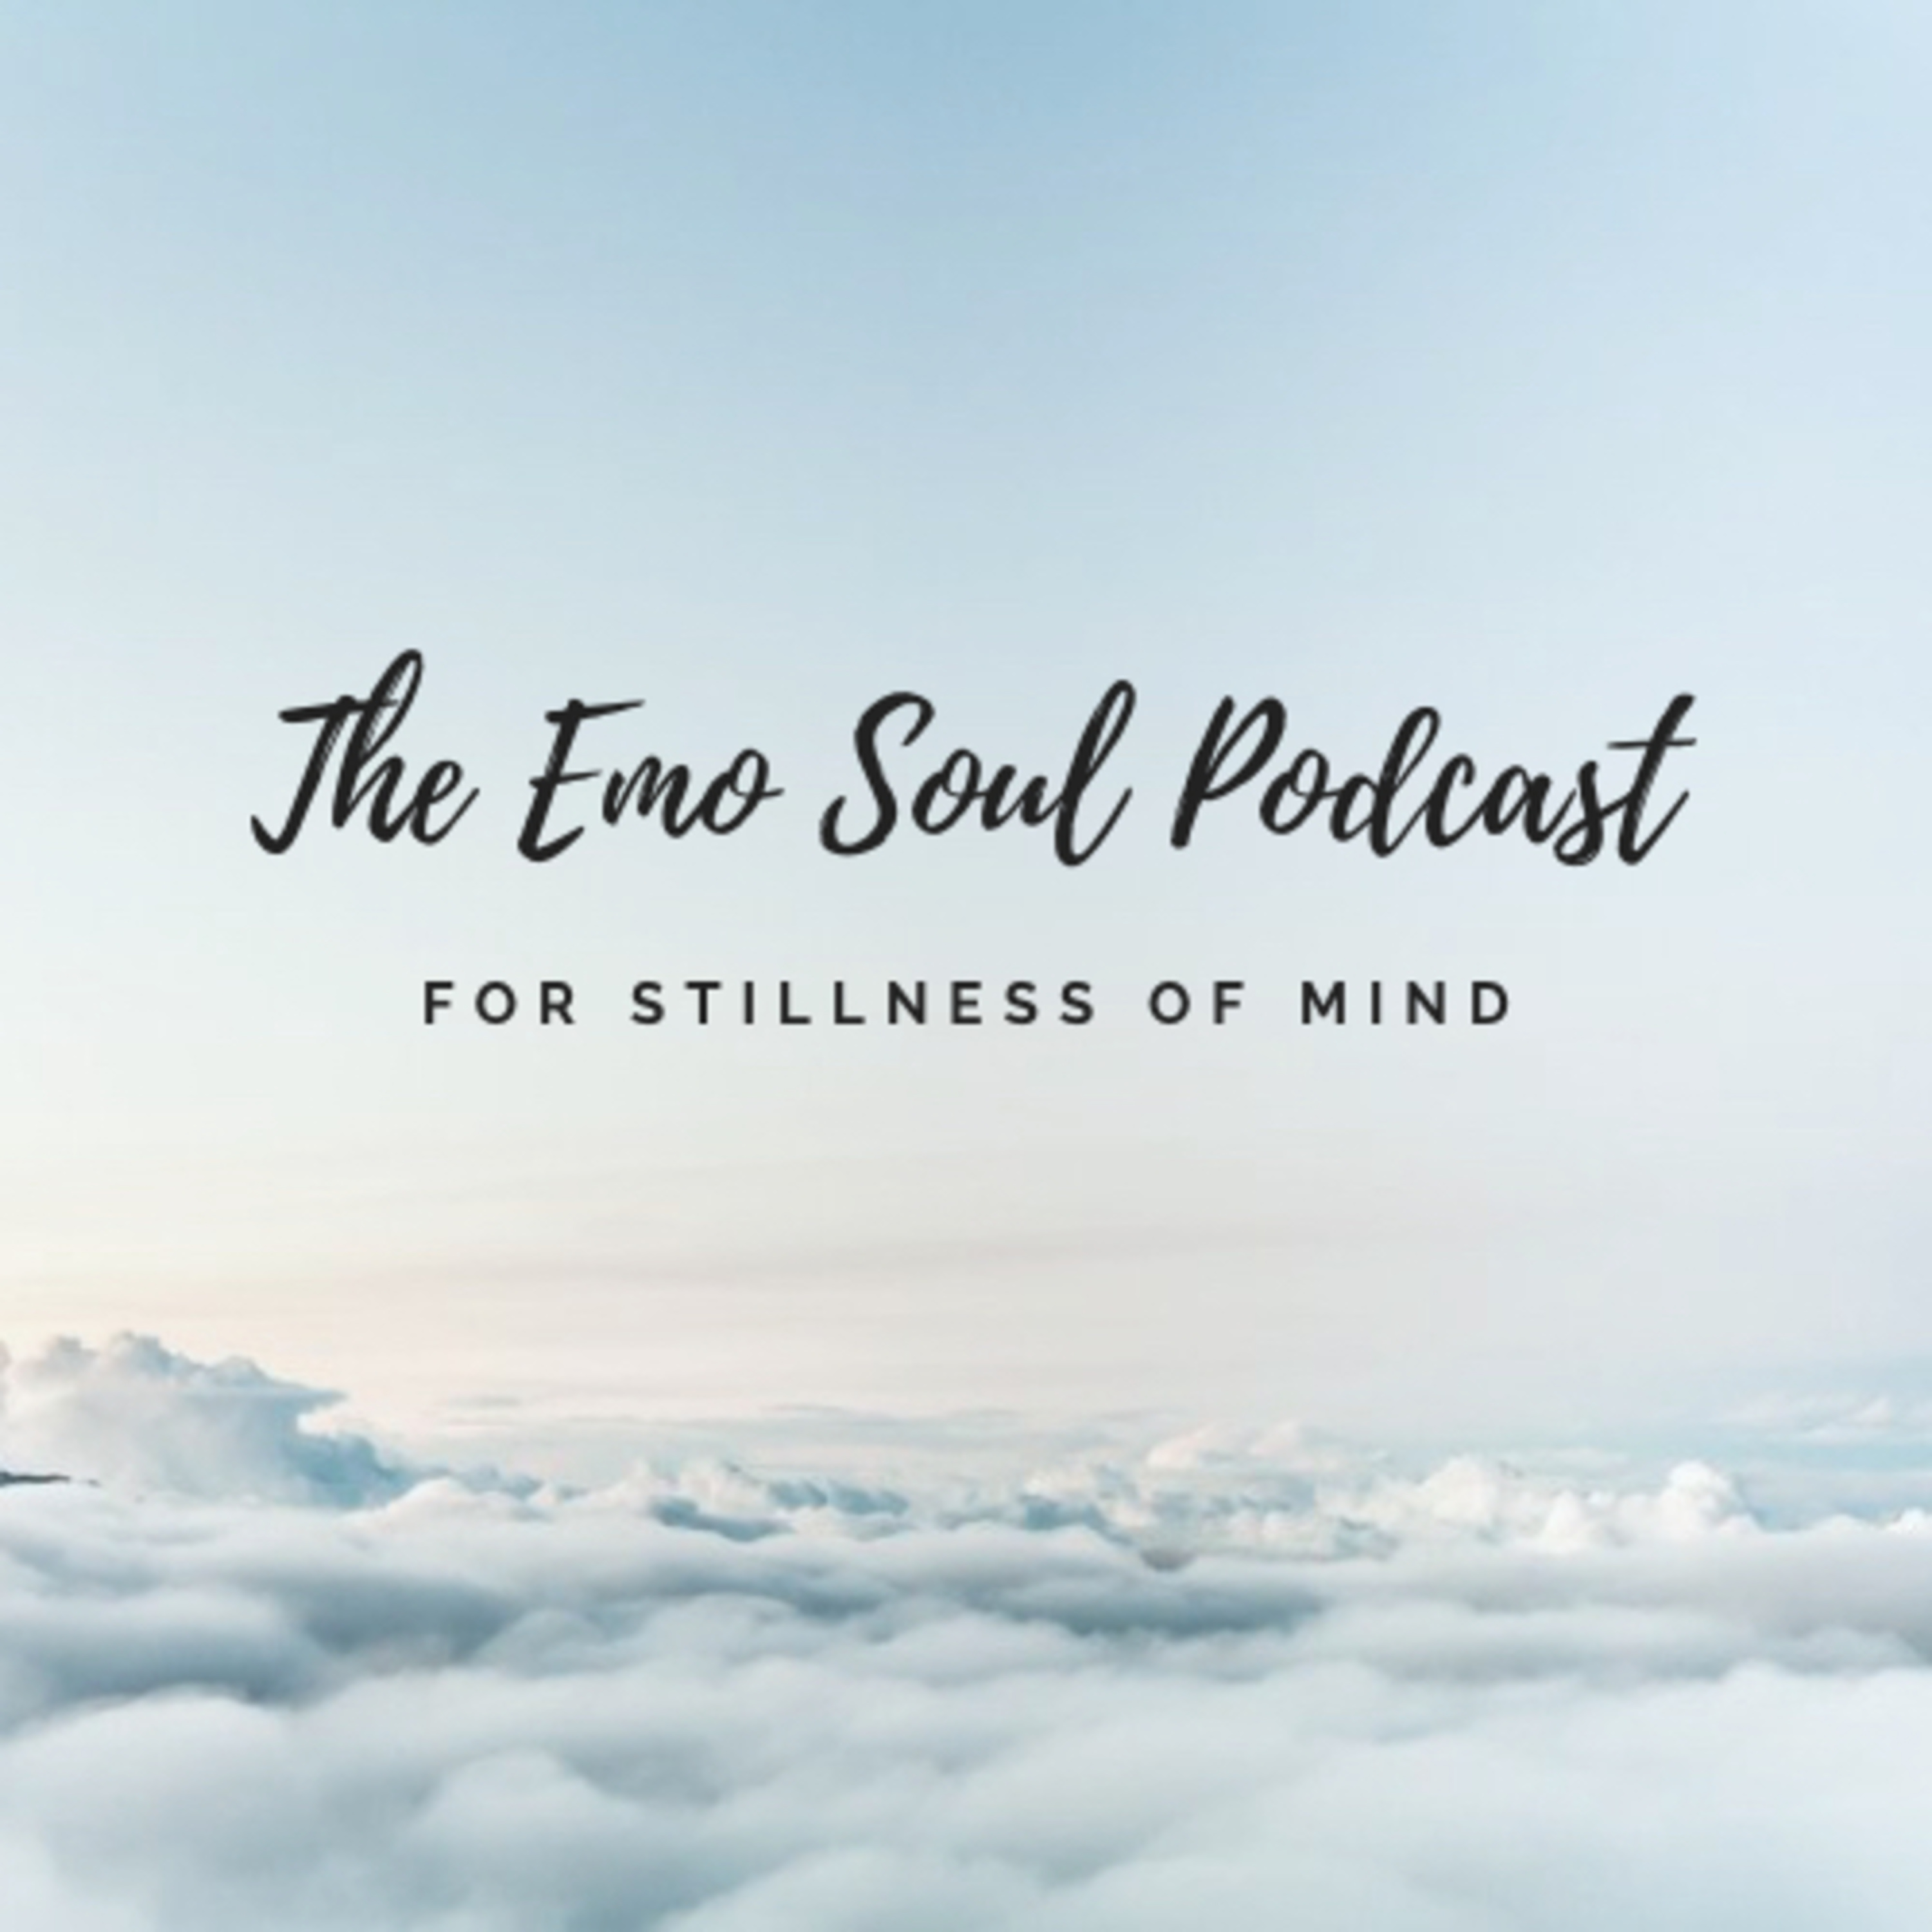 The Emo Soul Podcast